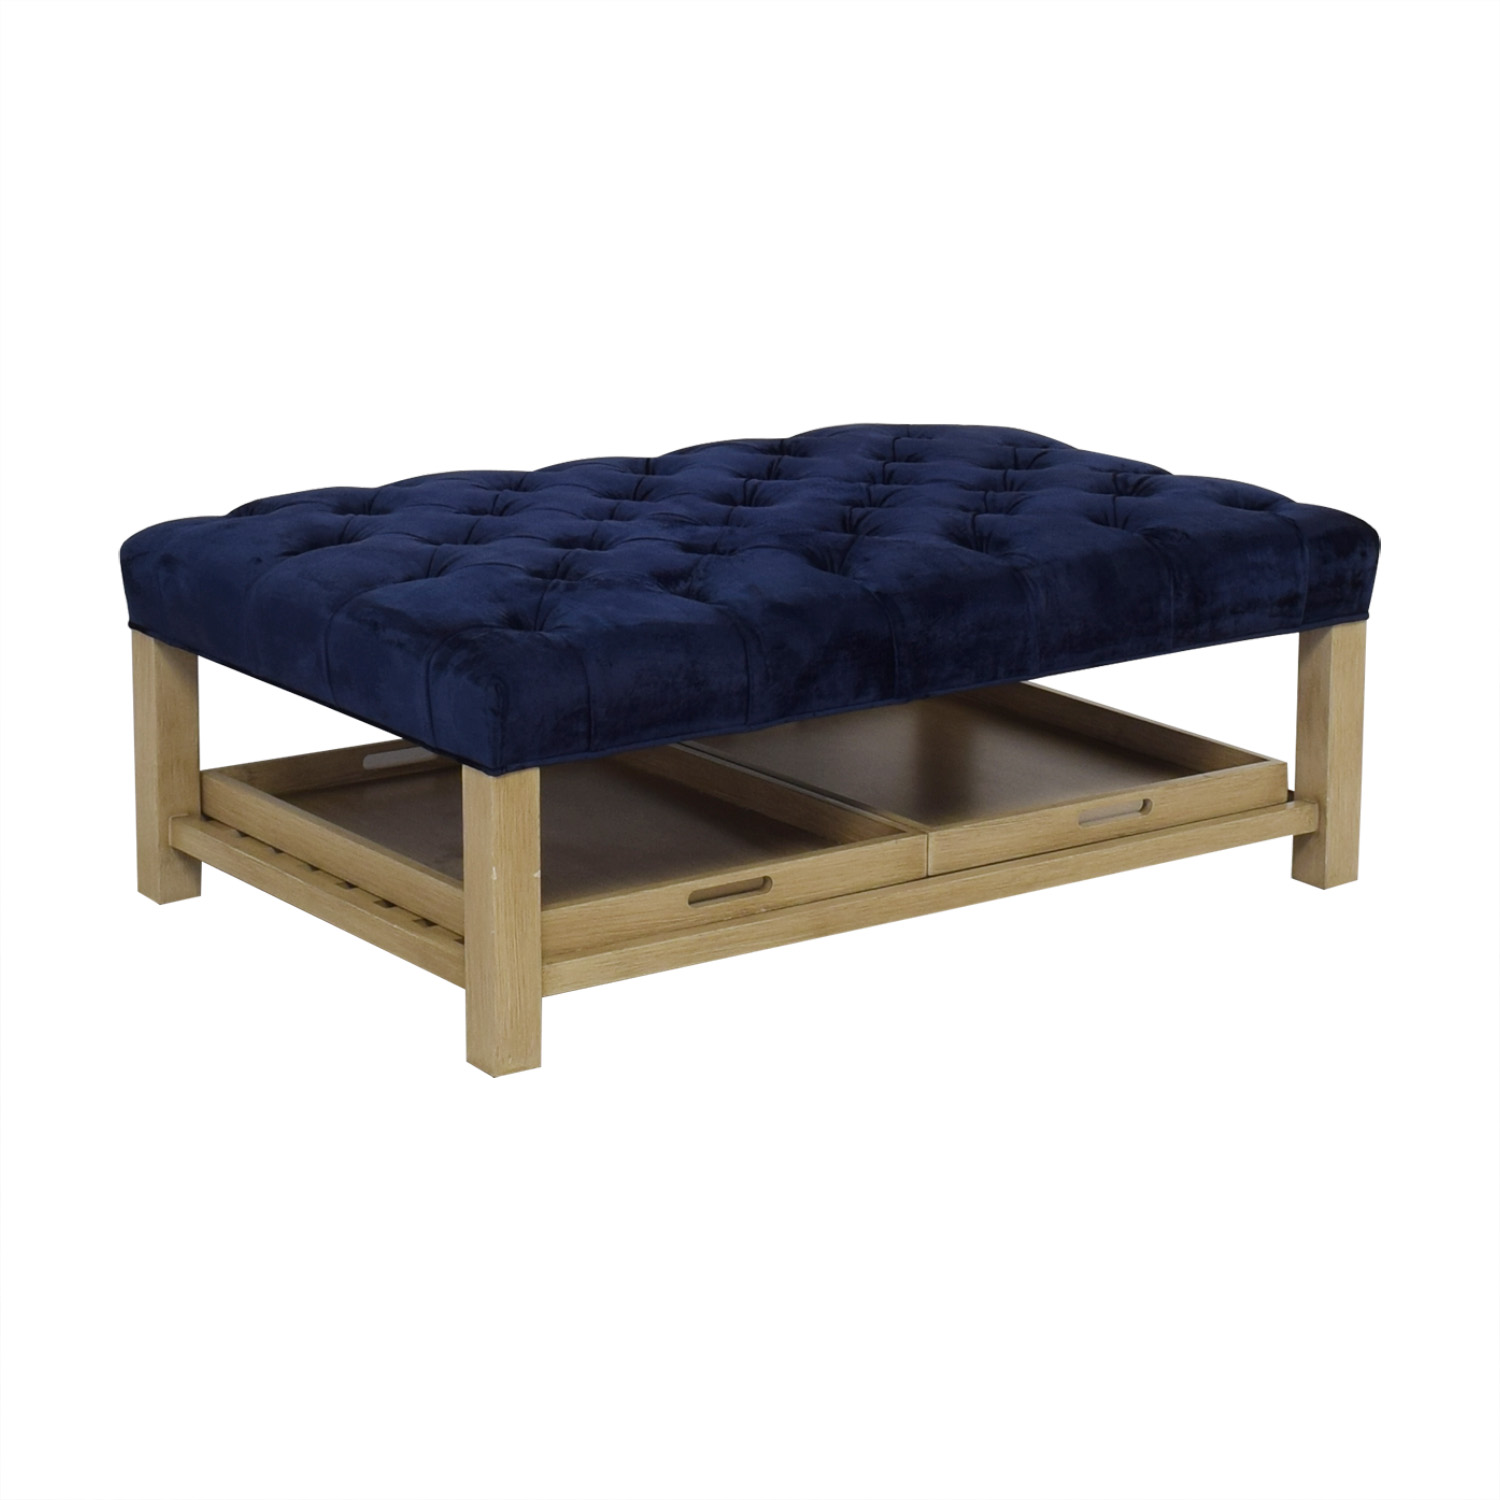 Arhaus Arhaus Tufted Coffee Table with Trays for sale